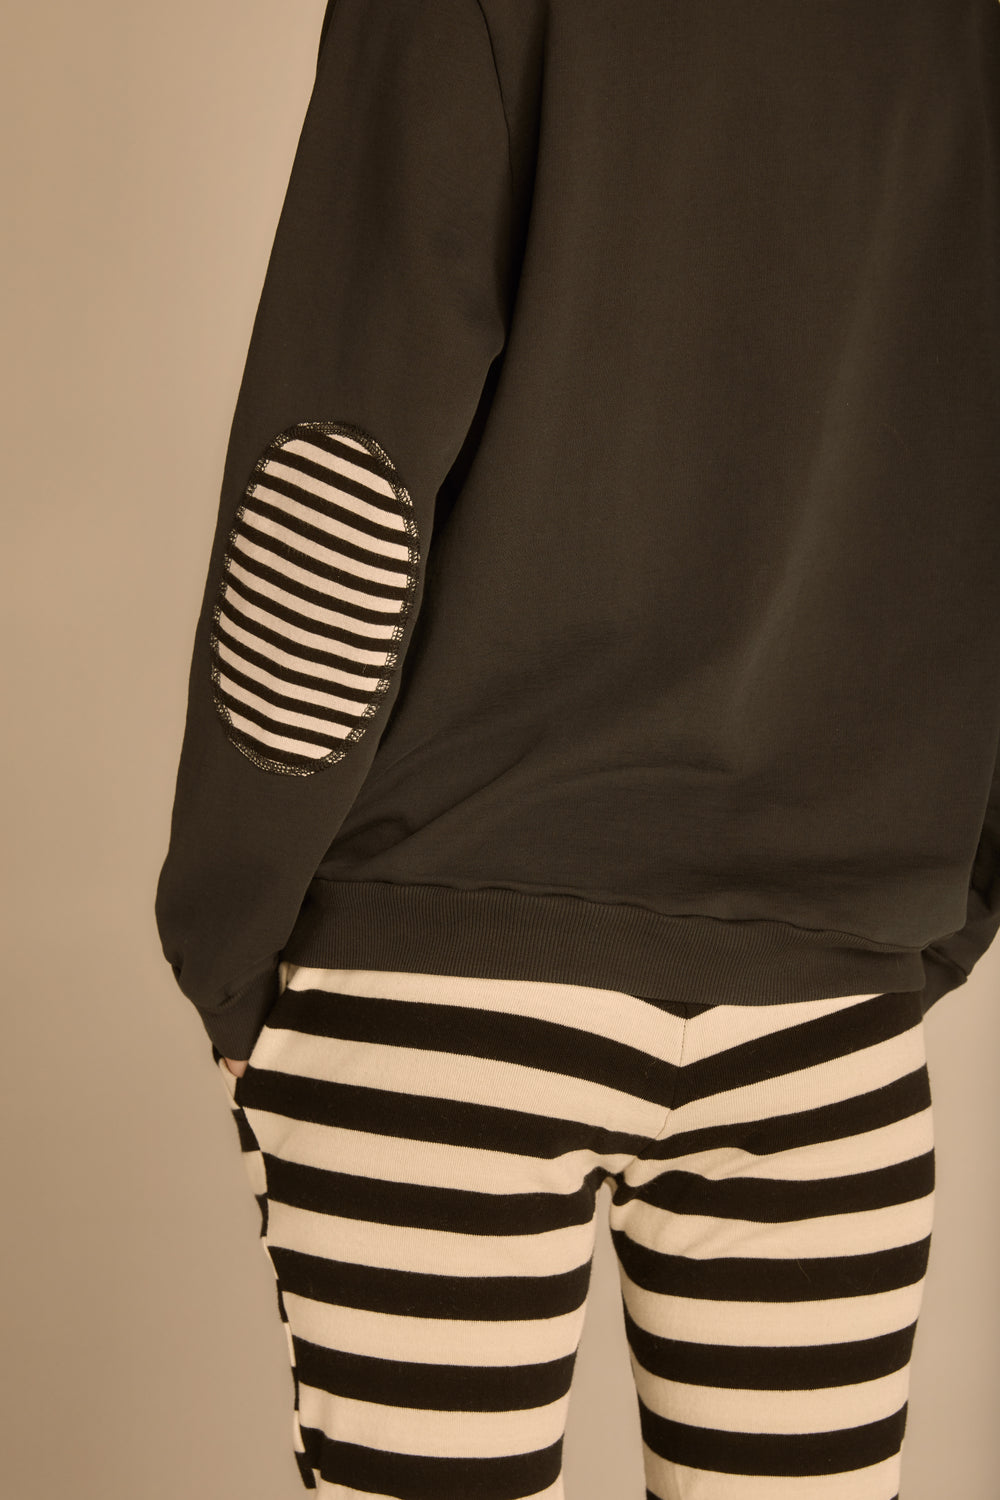 The Striped Passage Pullover